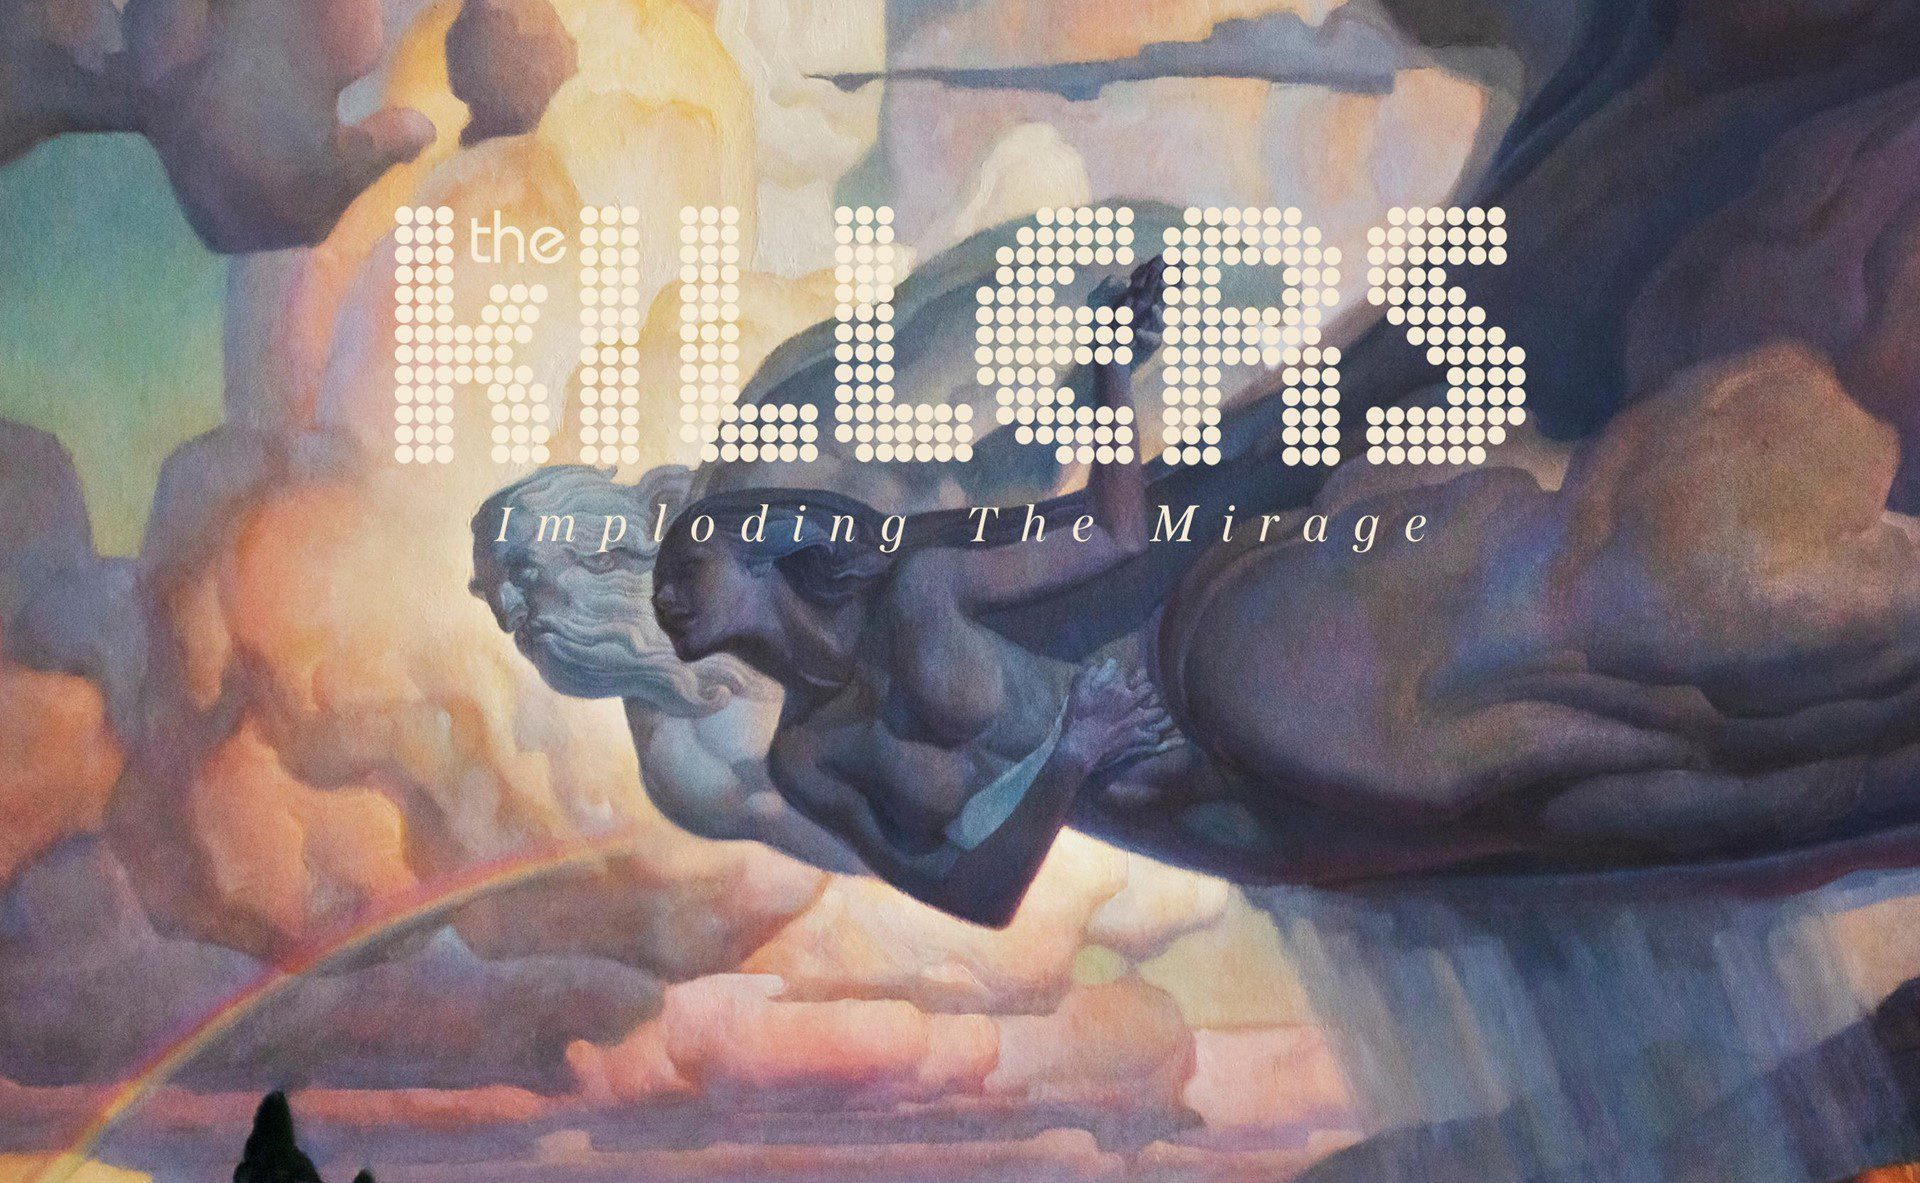 Nuevo disco de the killers Imploding the mirage